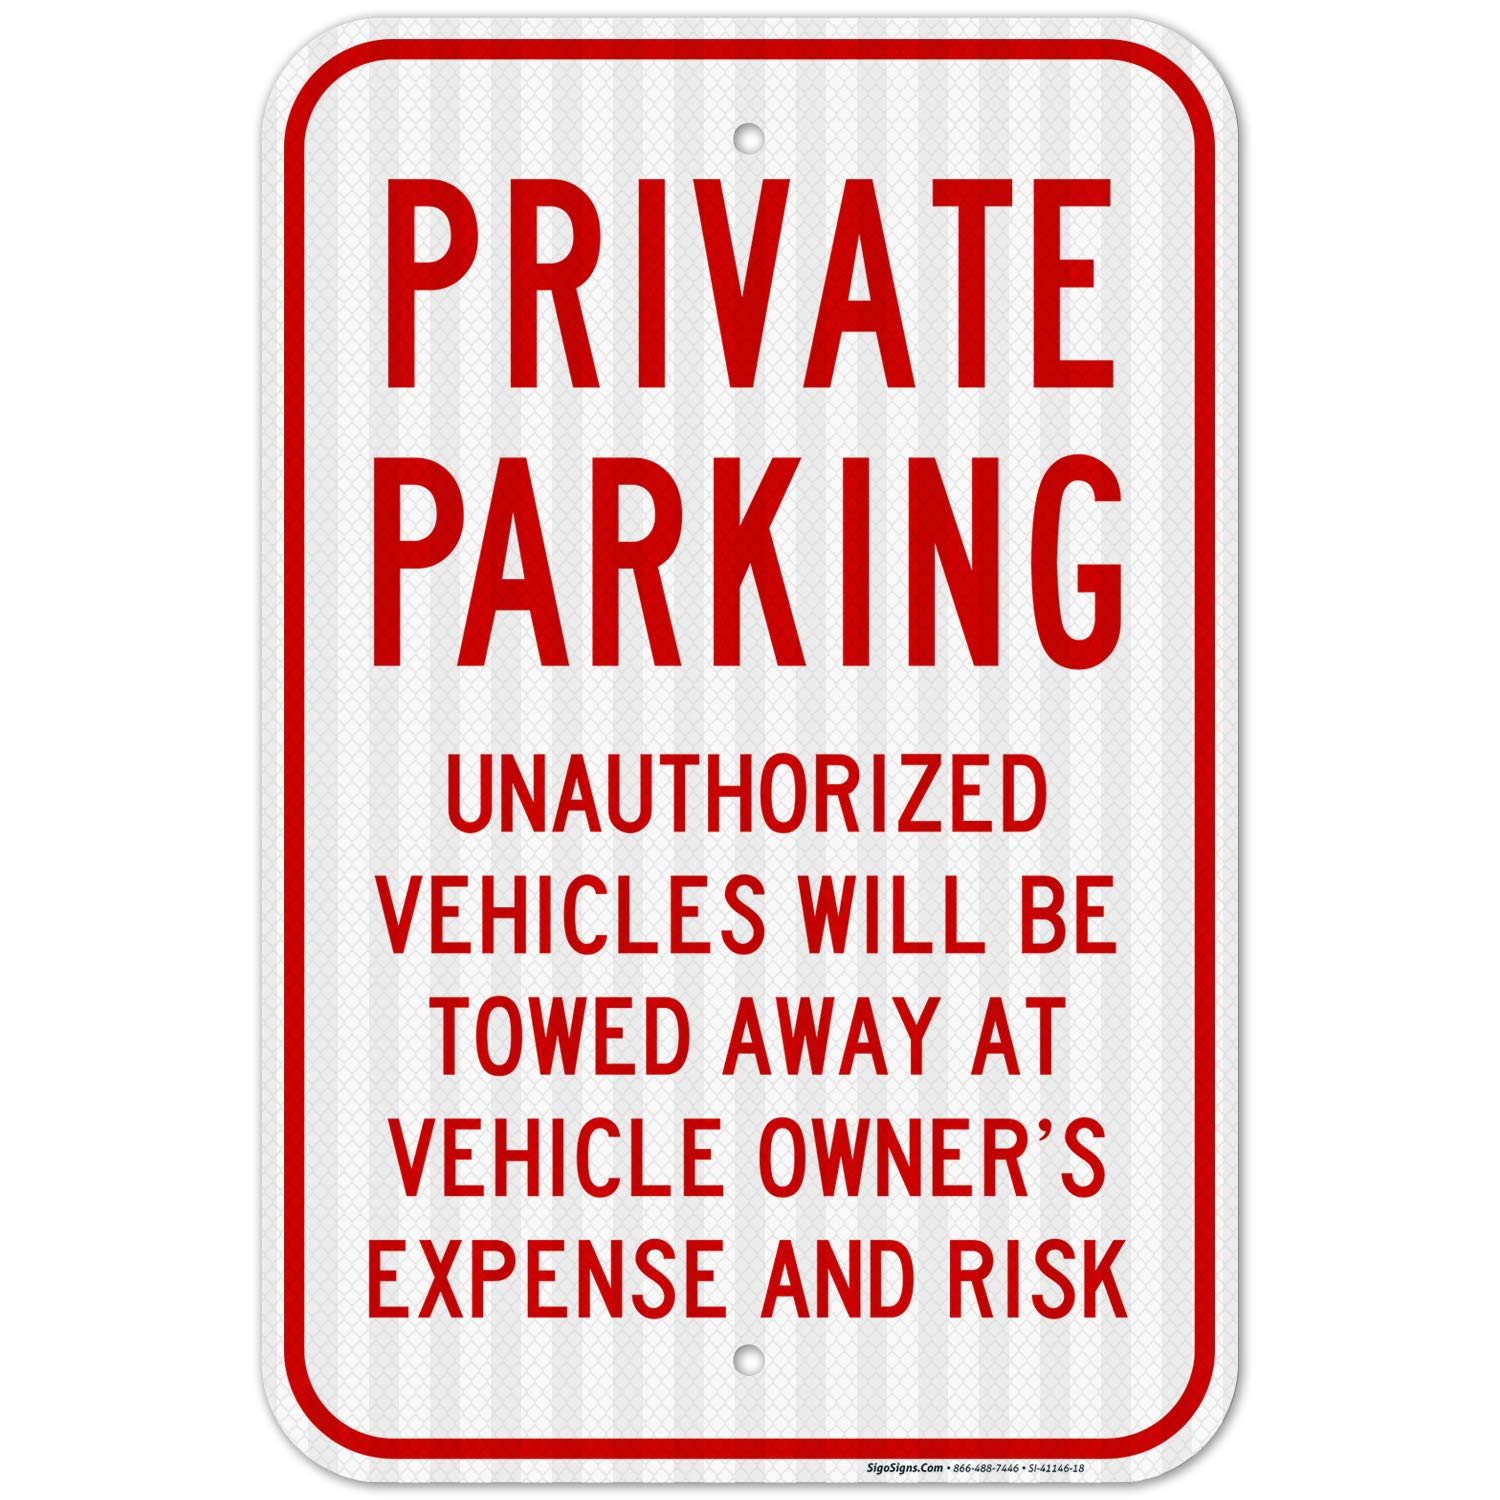 Private Ranking TOP1 Parking No Sign 12x18 Inches Under blast sales Reflective 3M EGP